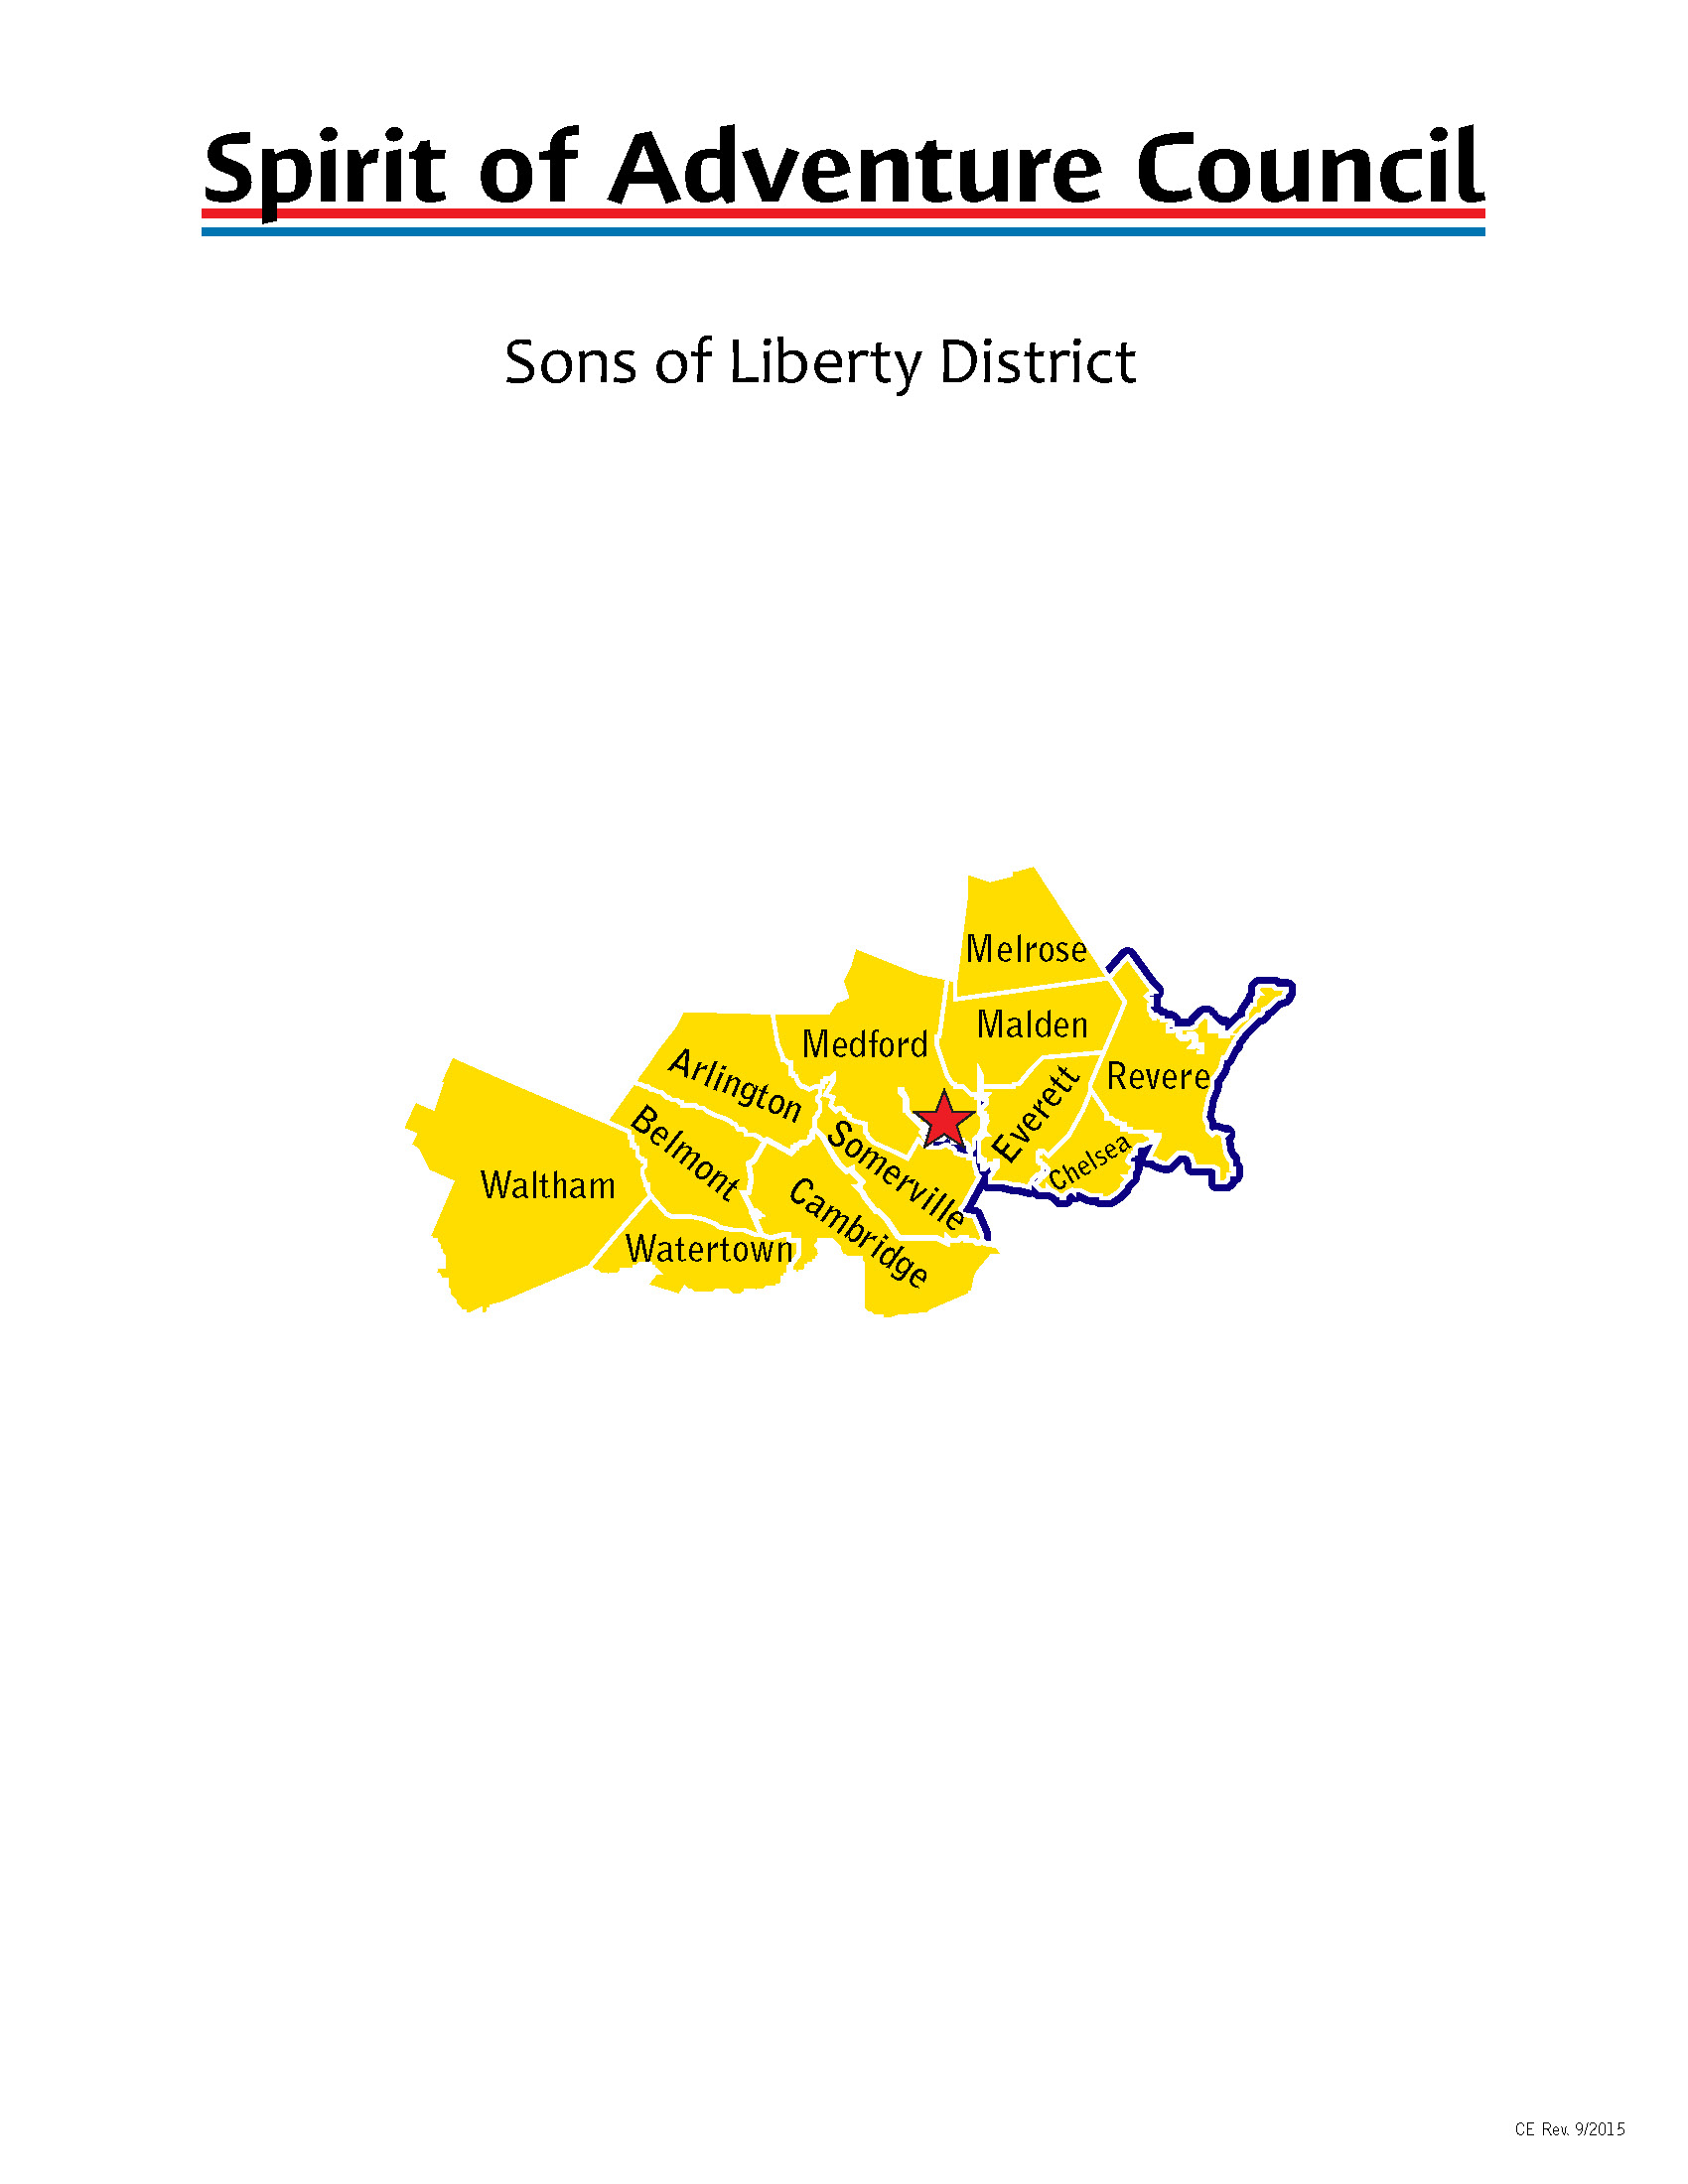 Sons of Liberty District